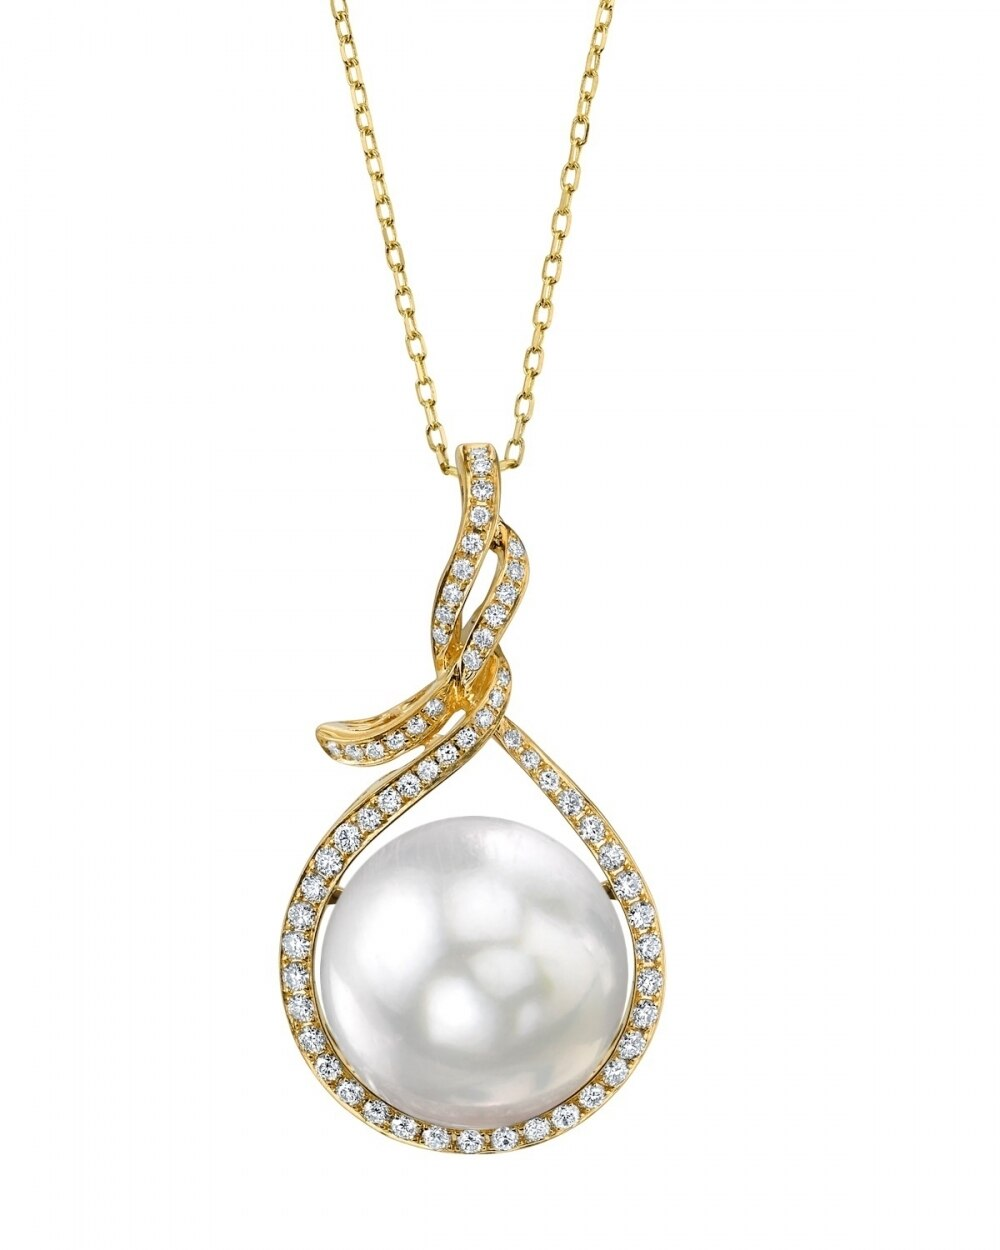 This exquisite pendant features an 14.0-15.0mm White South Sea Pearl, handpicked for its luminous luster